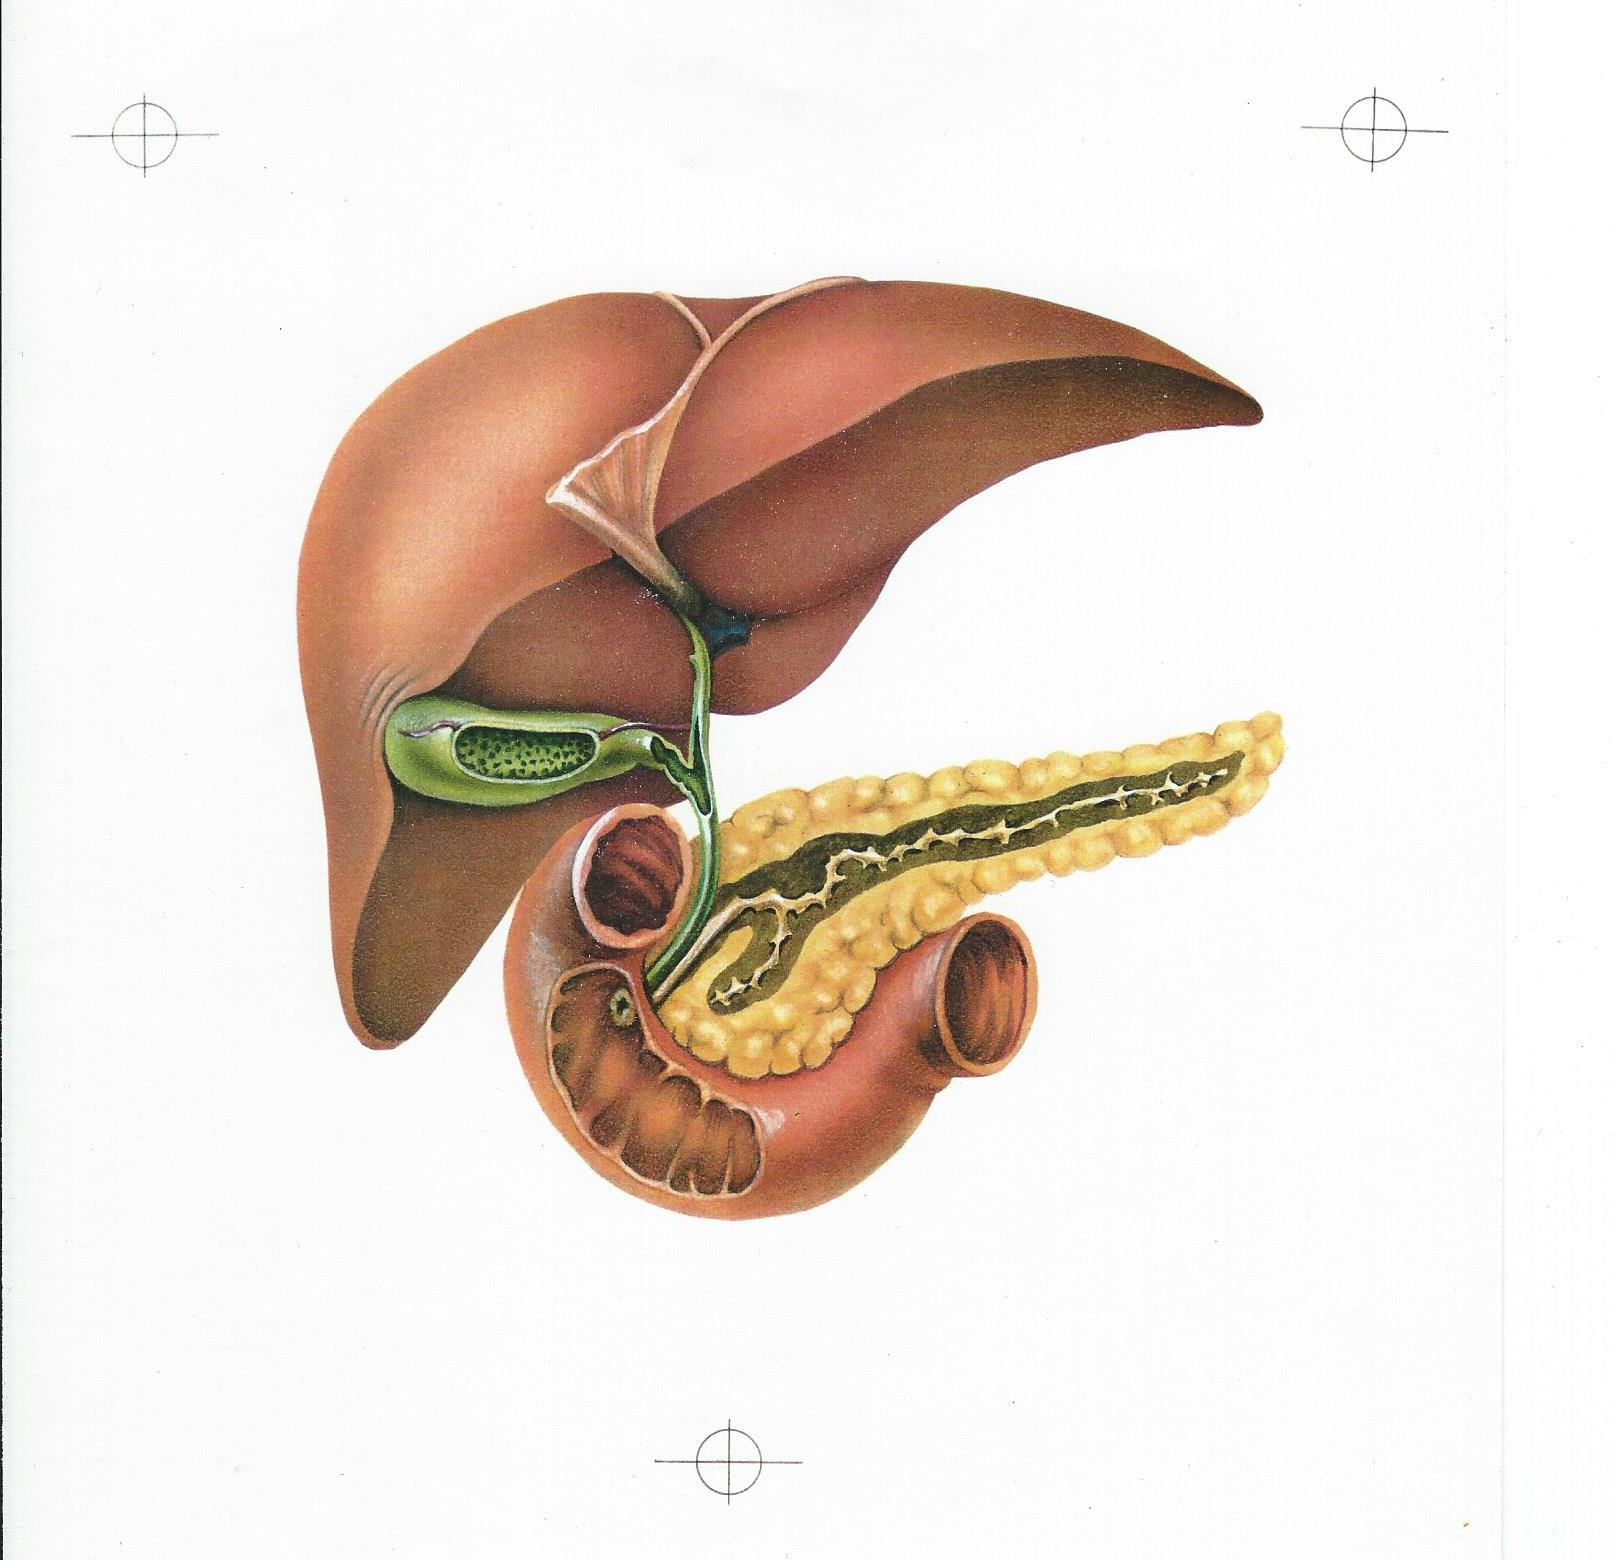 Anatomy of the liver, gallbladder, pancreas, and duodenum